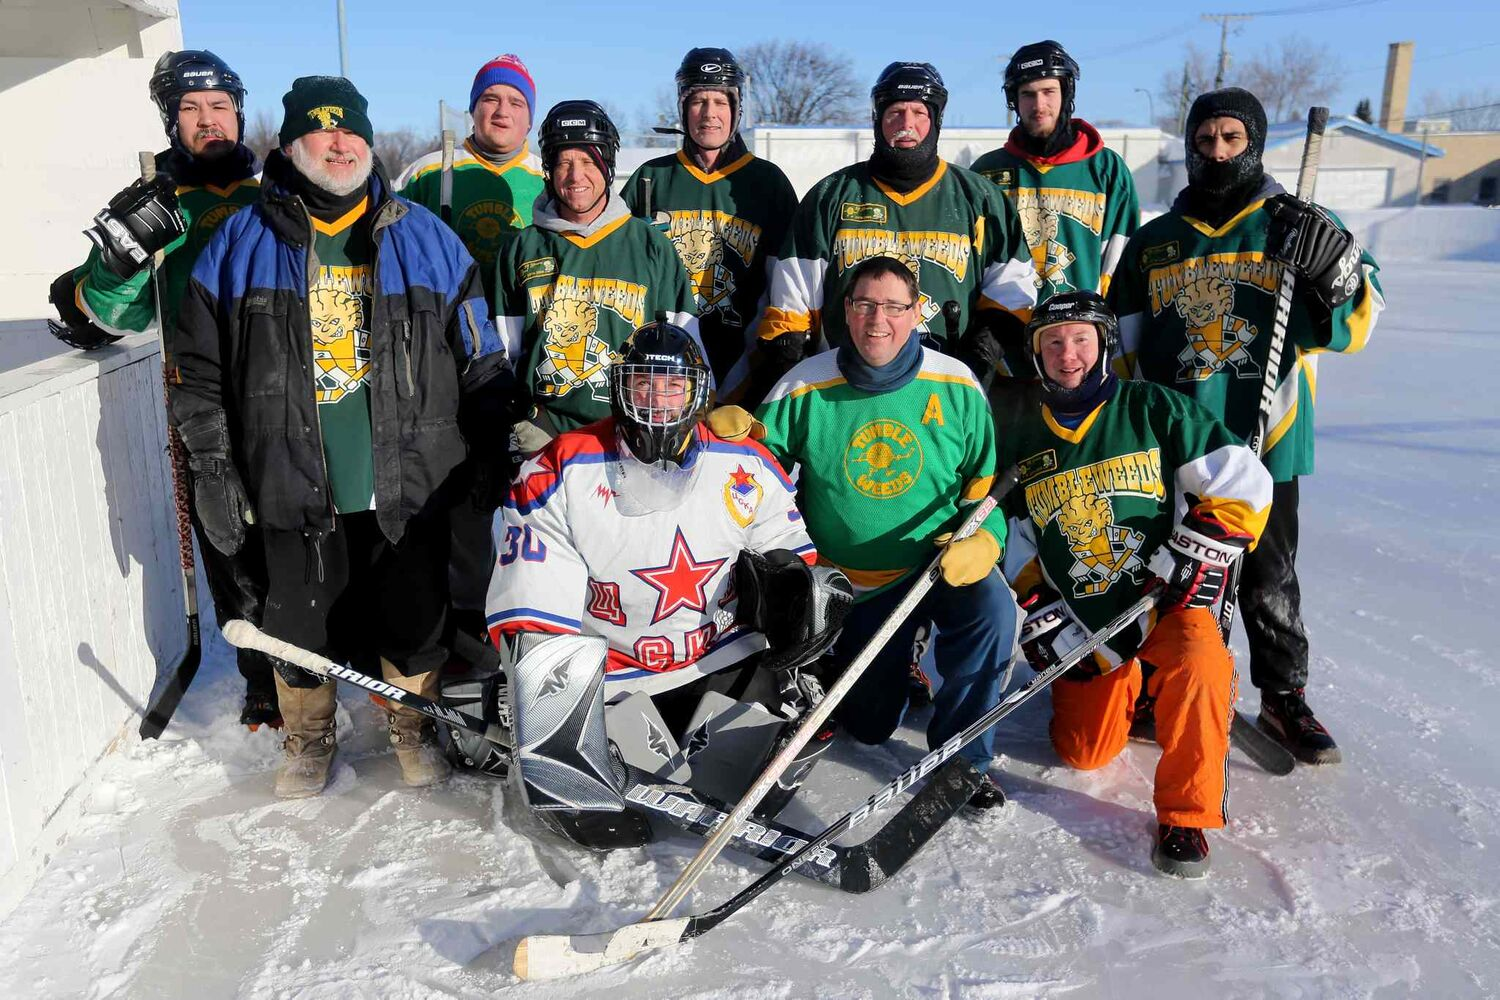 The Tumbleweeds, the oldest spongee team in the world, pose for a post-game photo. (Trevor Hagan / Winnipeg Free Press)